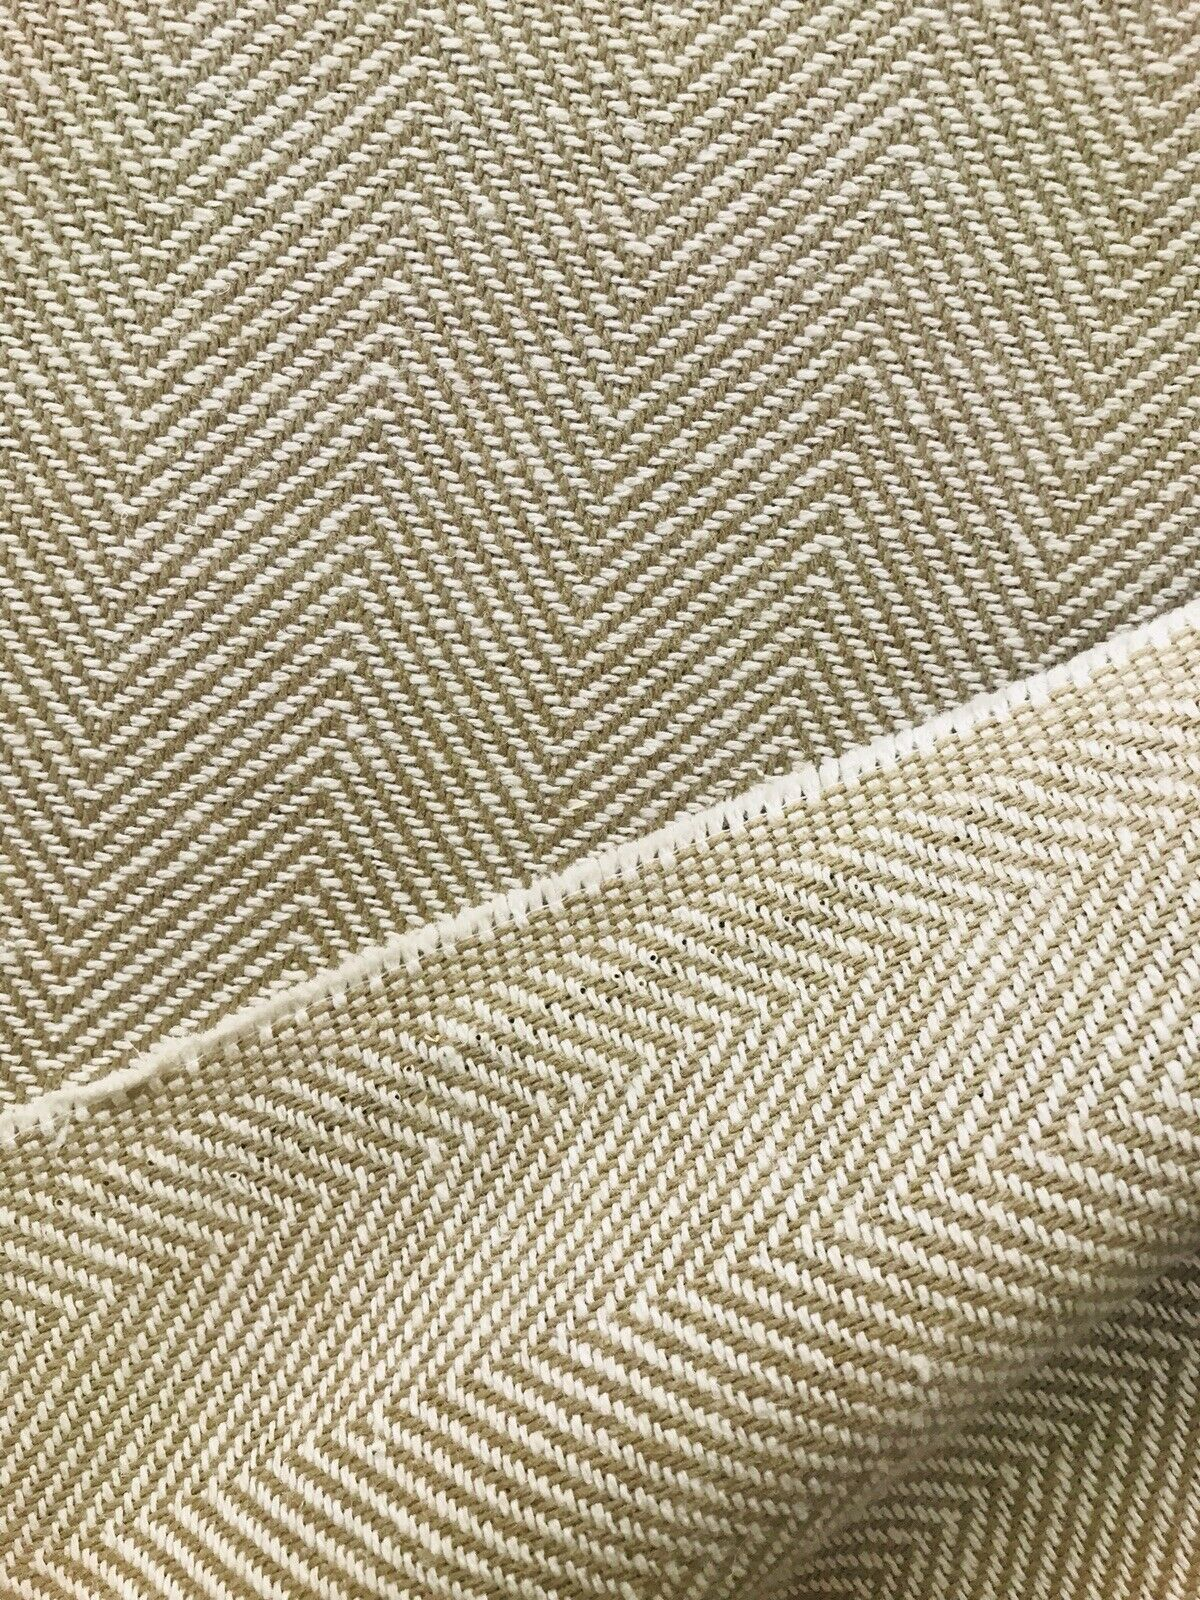 NEW Novelty Designer Herringbone Chevron Upholstery & Drapery Tweed Fabric - Camel